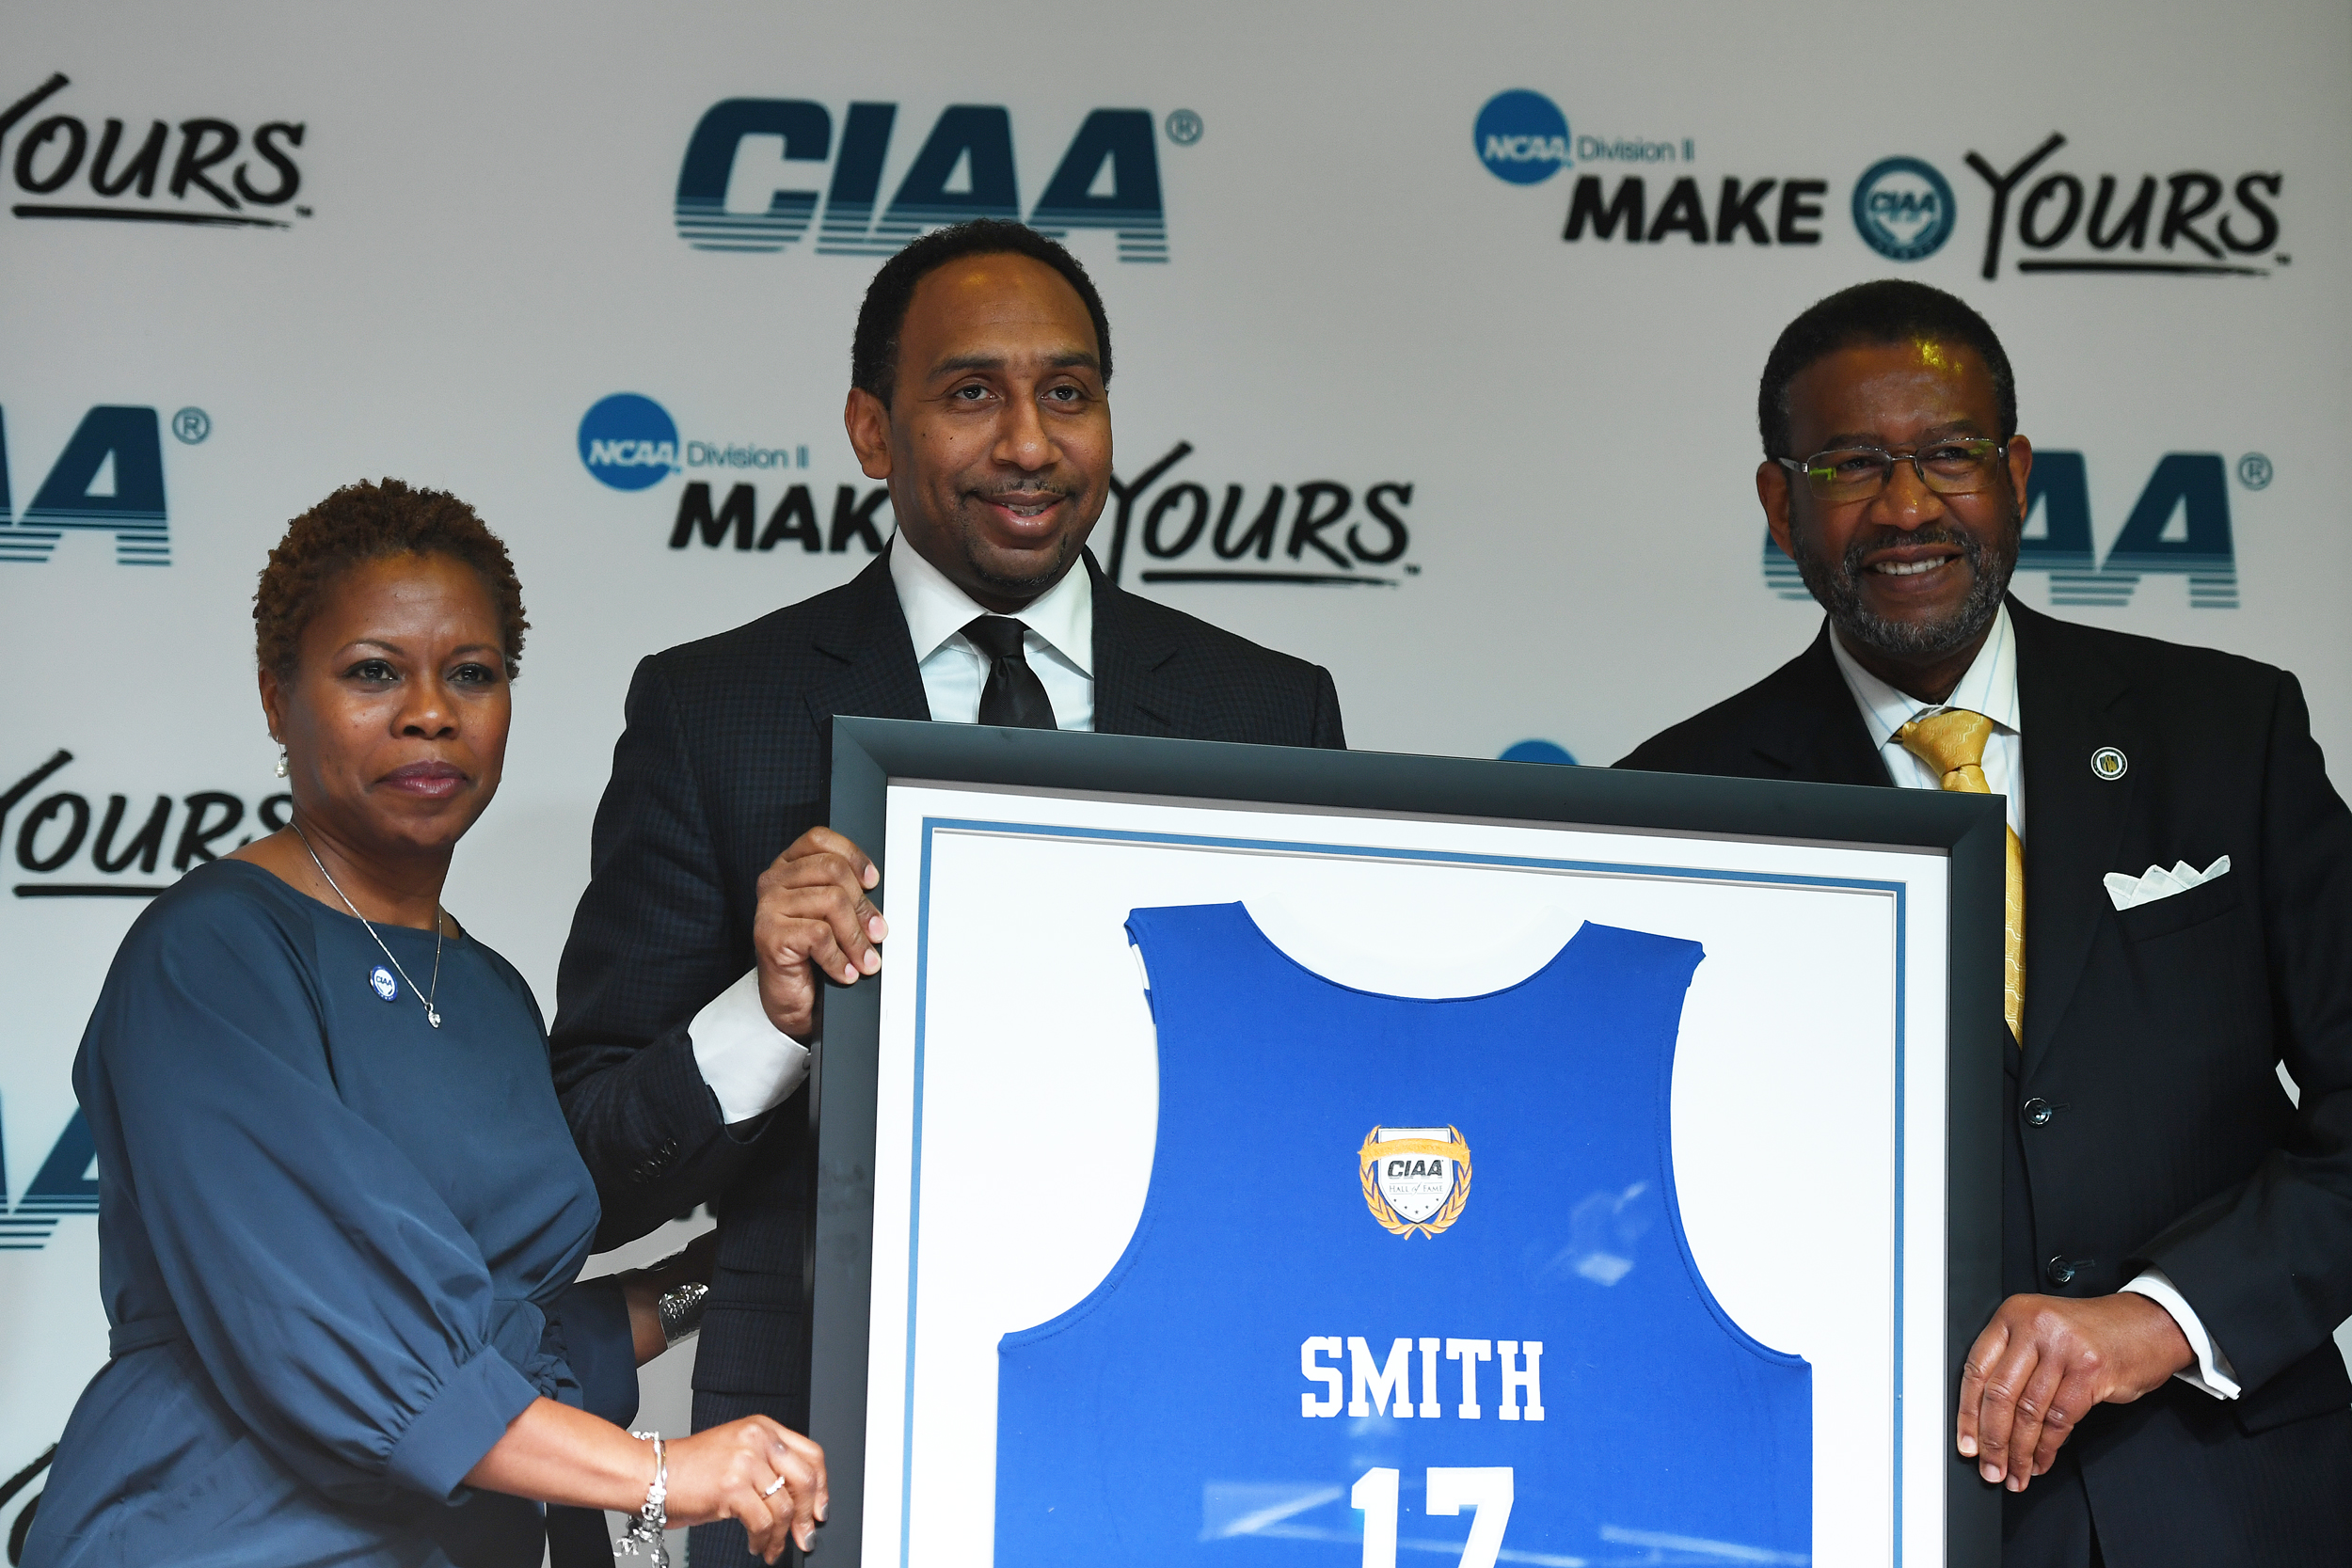 Stephen Smith holds up a framed Hall of Fame jersey during the CIAA Hall of Fame presentation on February 24, 2017 at the Charlotte Convention Center in Charlotte, North Carolina.